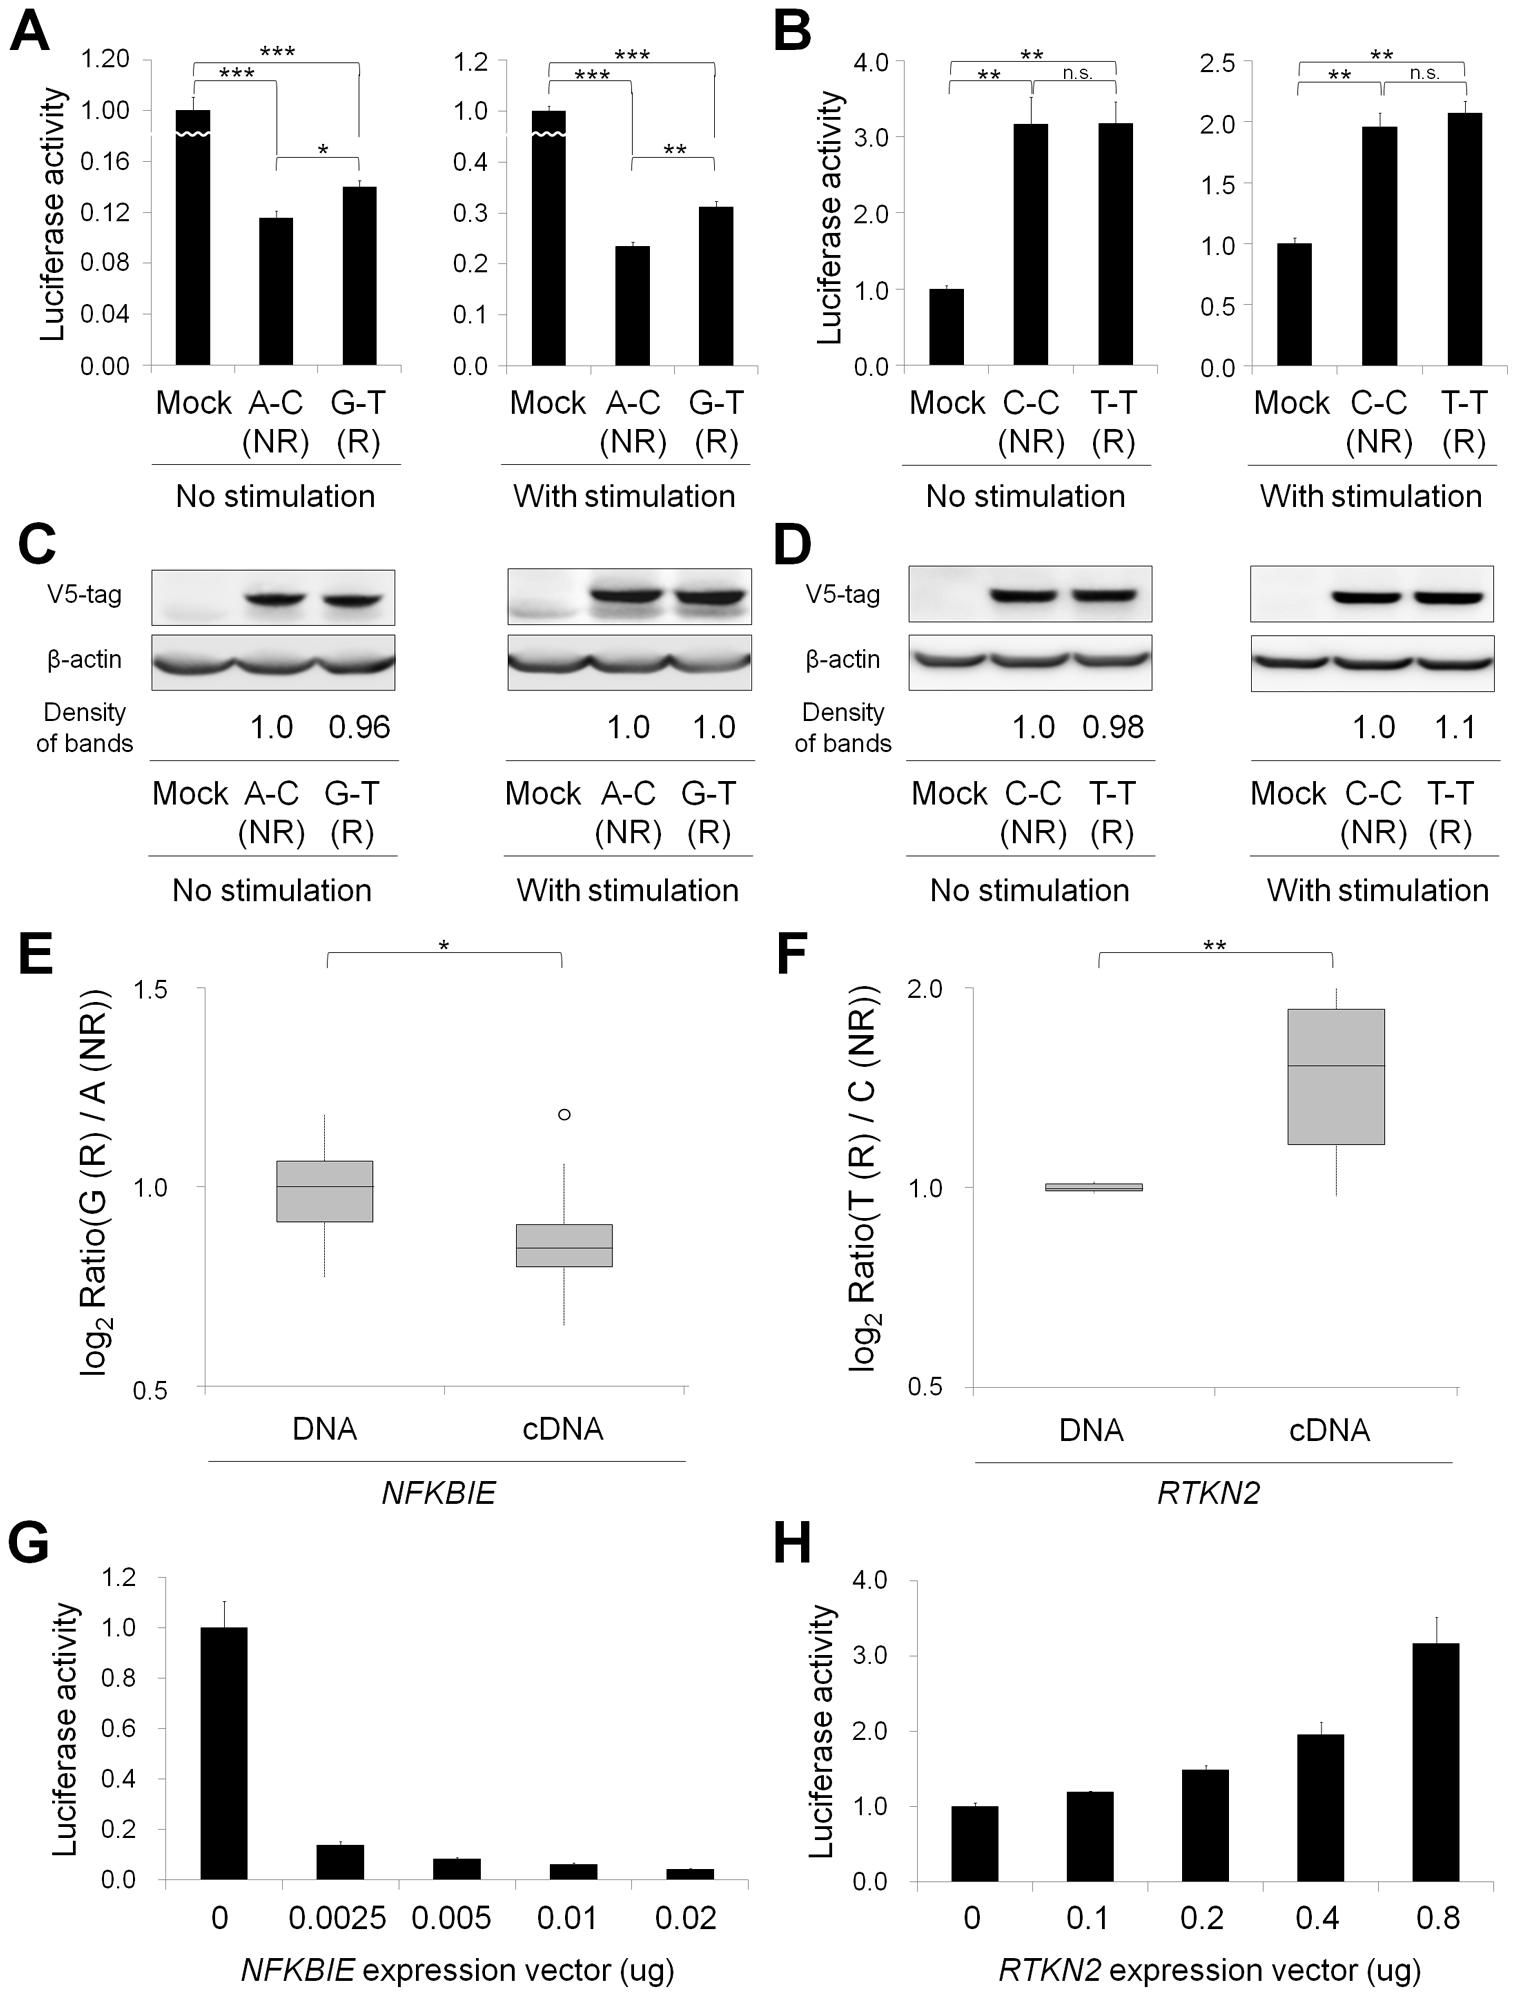 Functional evaluation of nsSNPs and allelic imbalance of expression in <i>NFKBIE</i> and <i>RTKN2</i>.